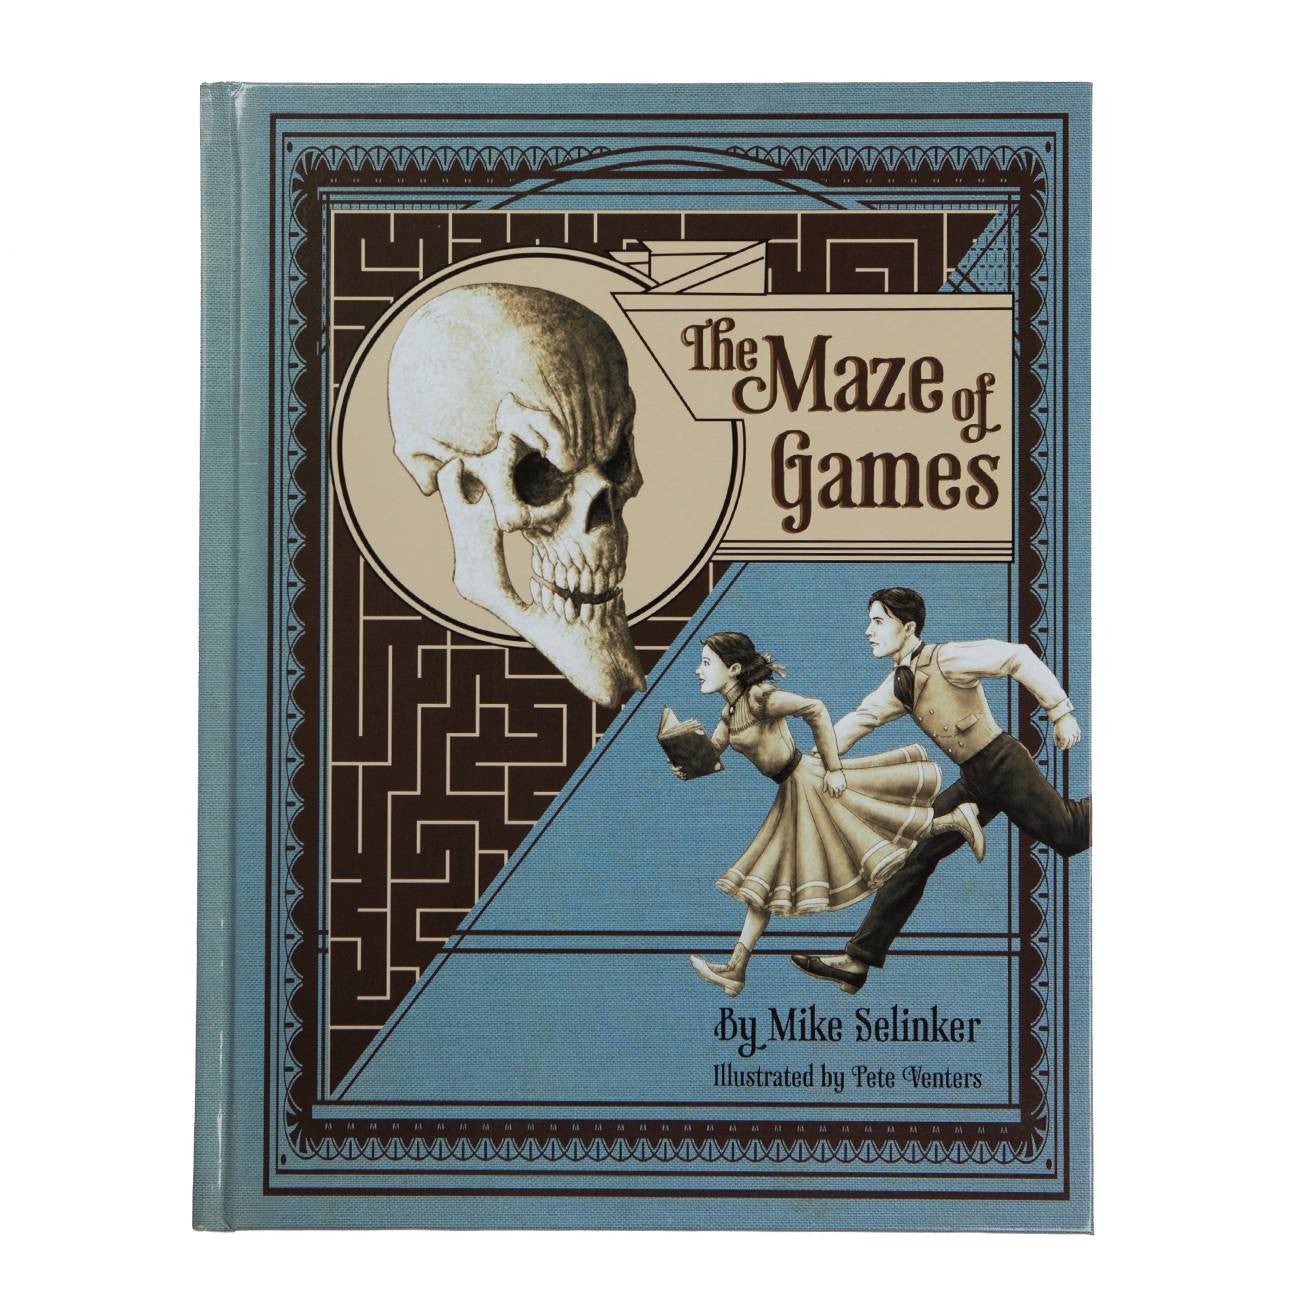 The Maze of Games <br />By Mike Selinker and Pete Venters